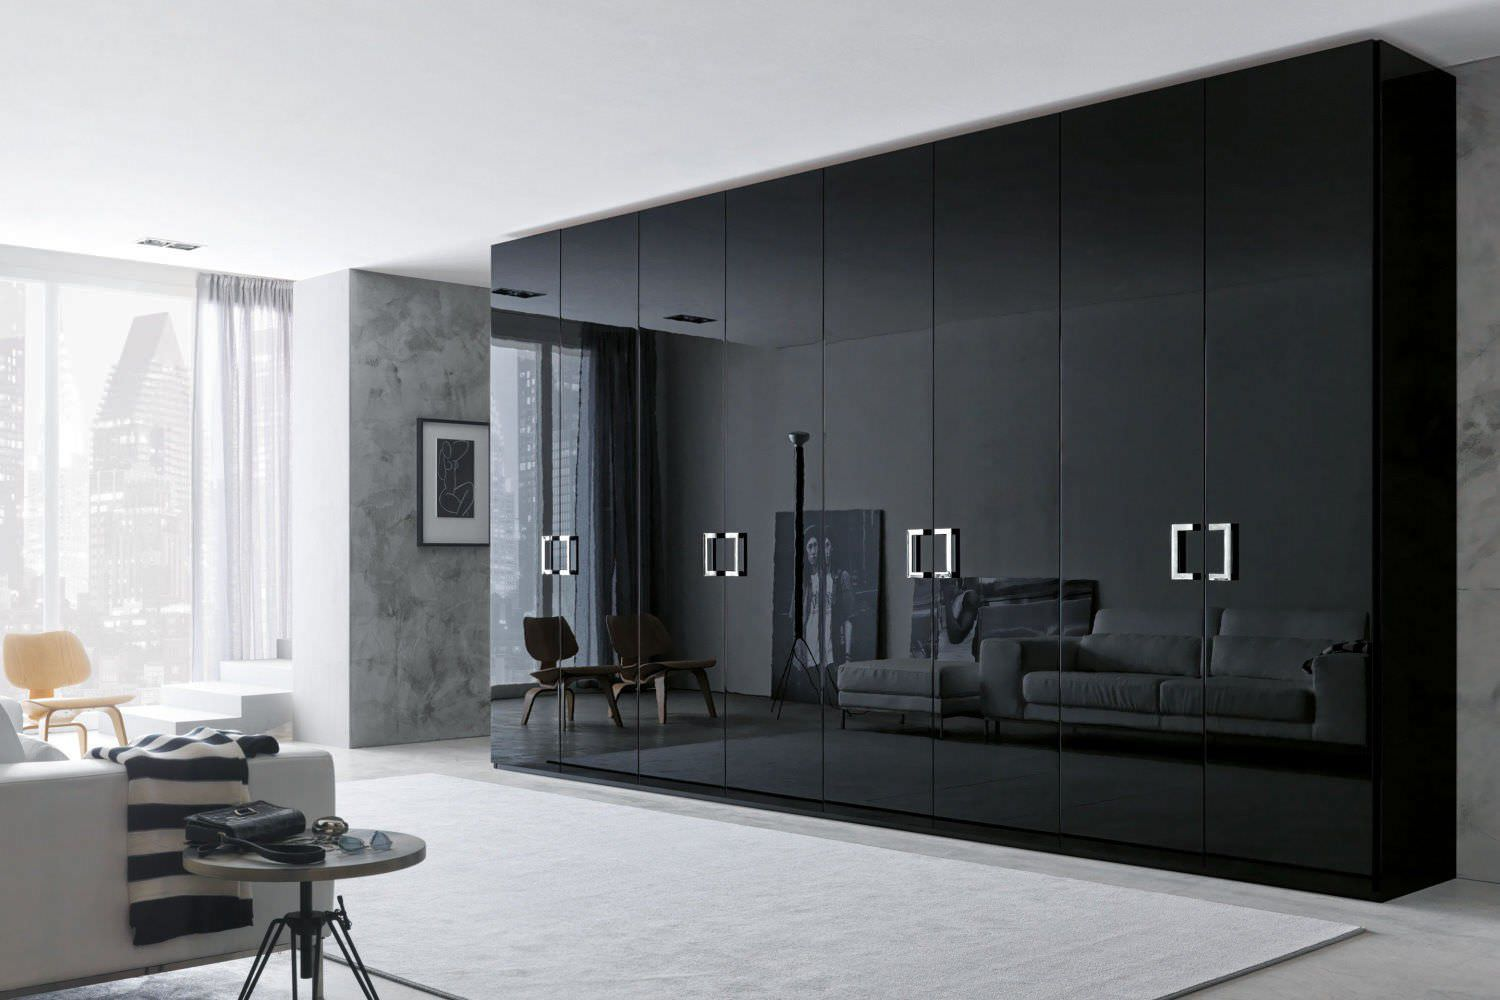 contemporary wardrobe  wooden  glossy lacquered wood  with  - contemporary wardrobe  wooden  glossy lacquered wood  with hinged door smooth